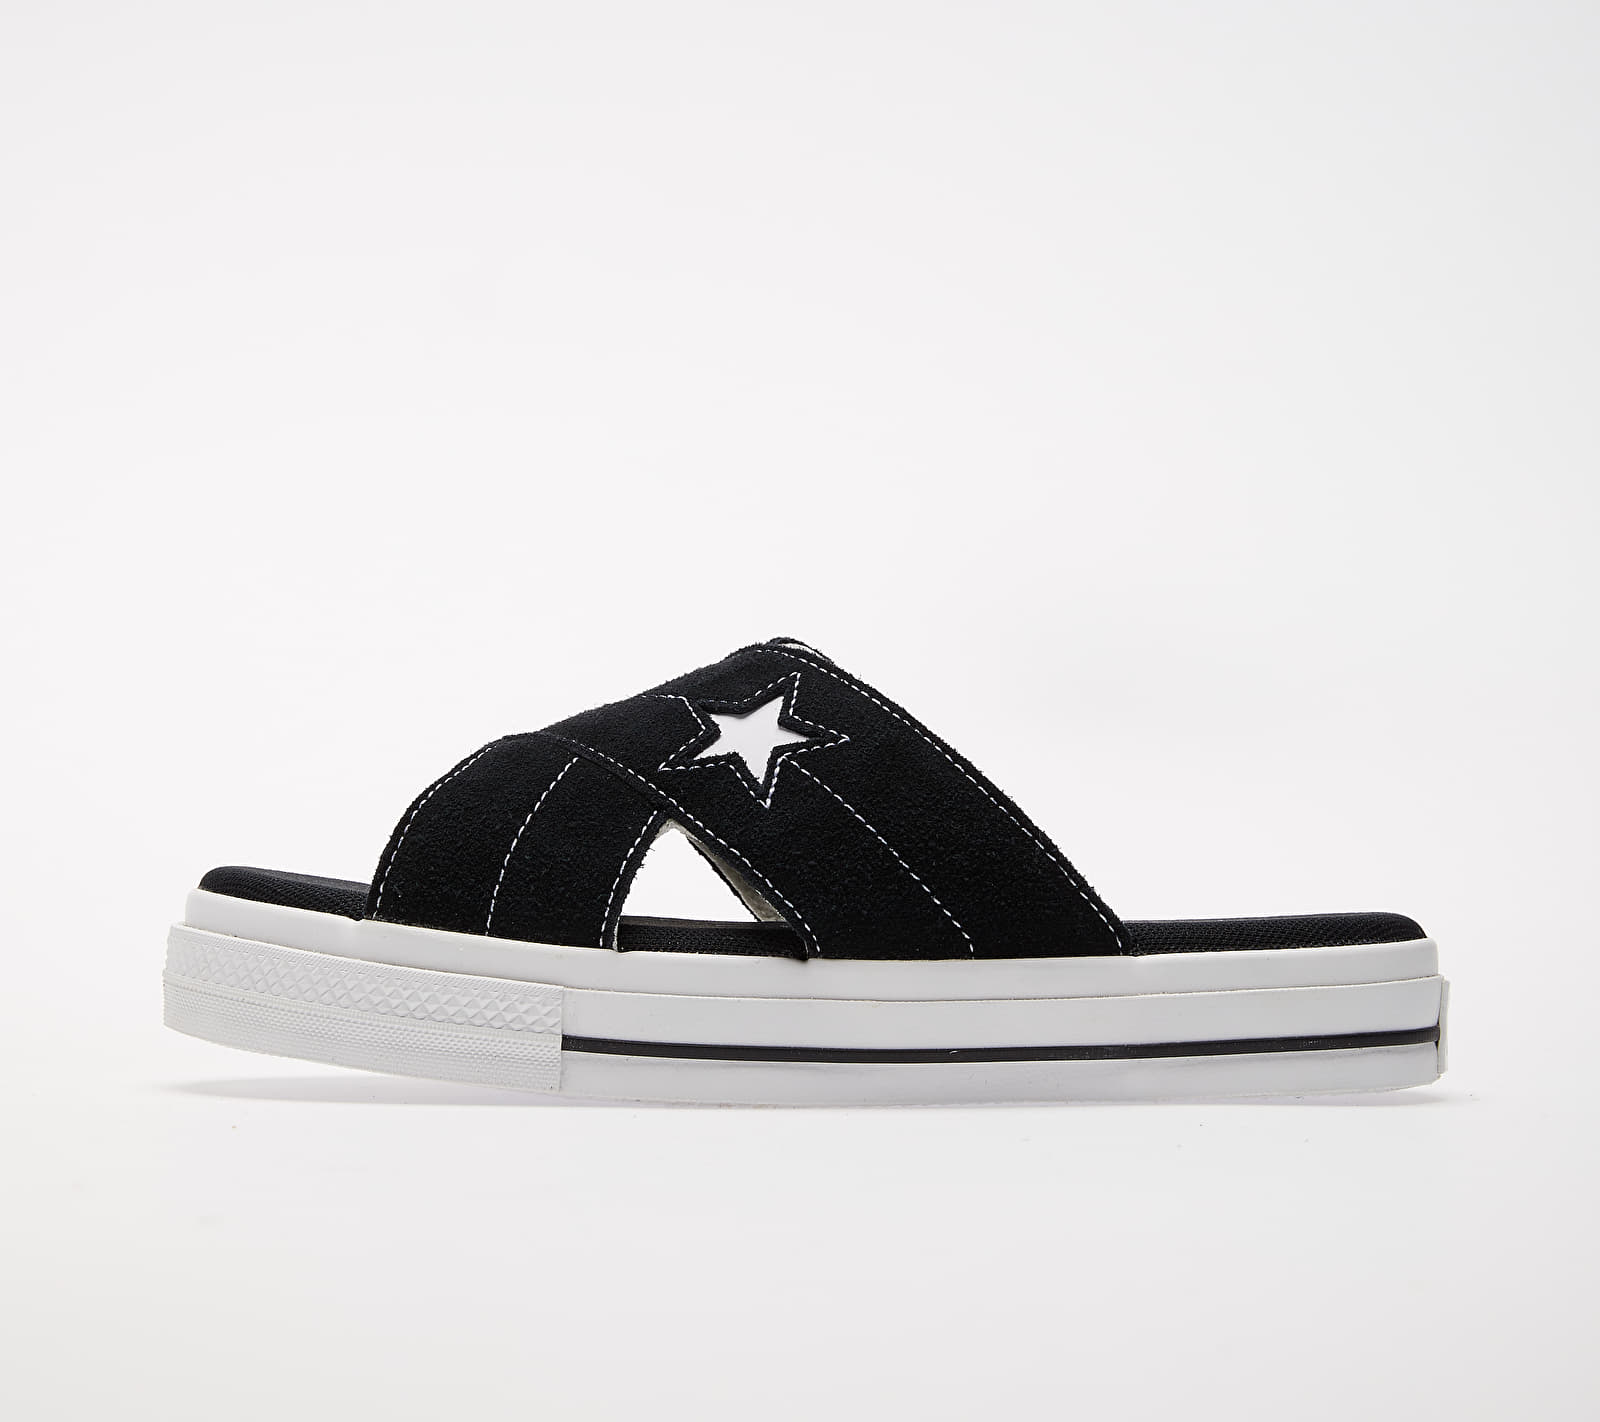 Converse One Star Sandal Black/ Egret/ White 1